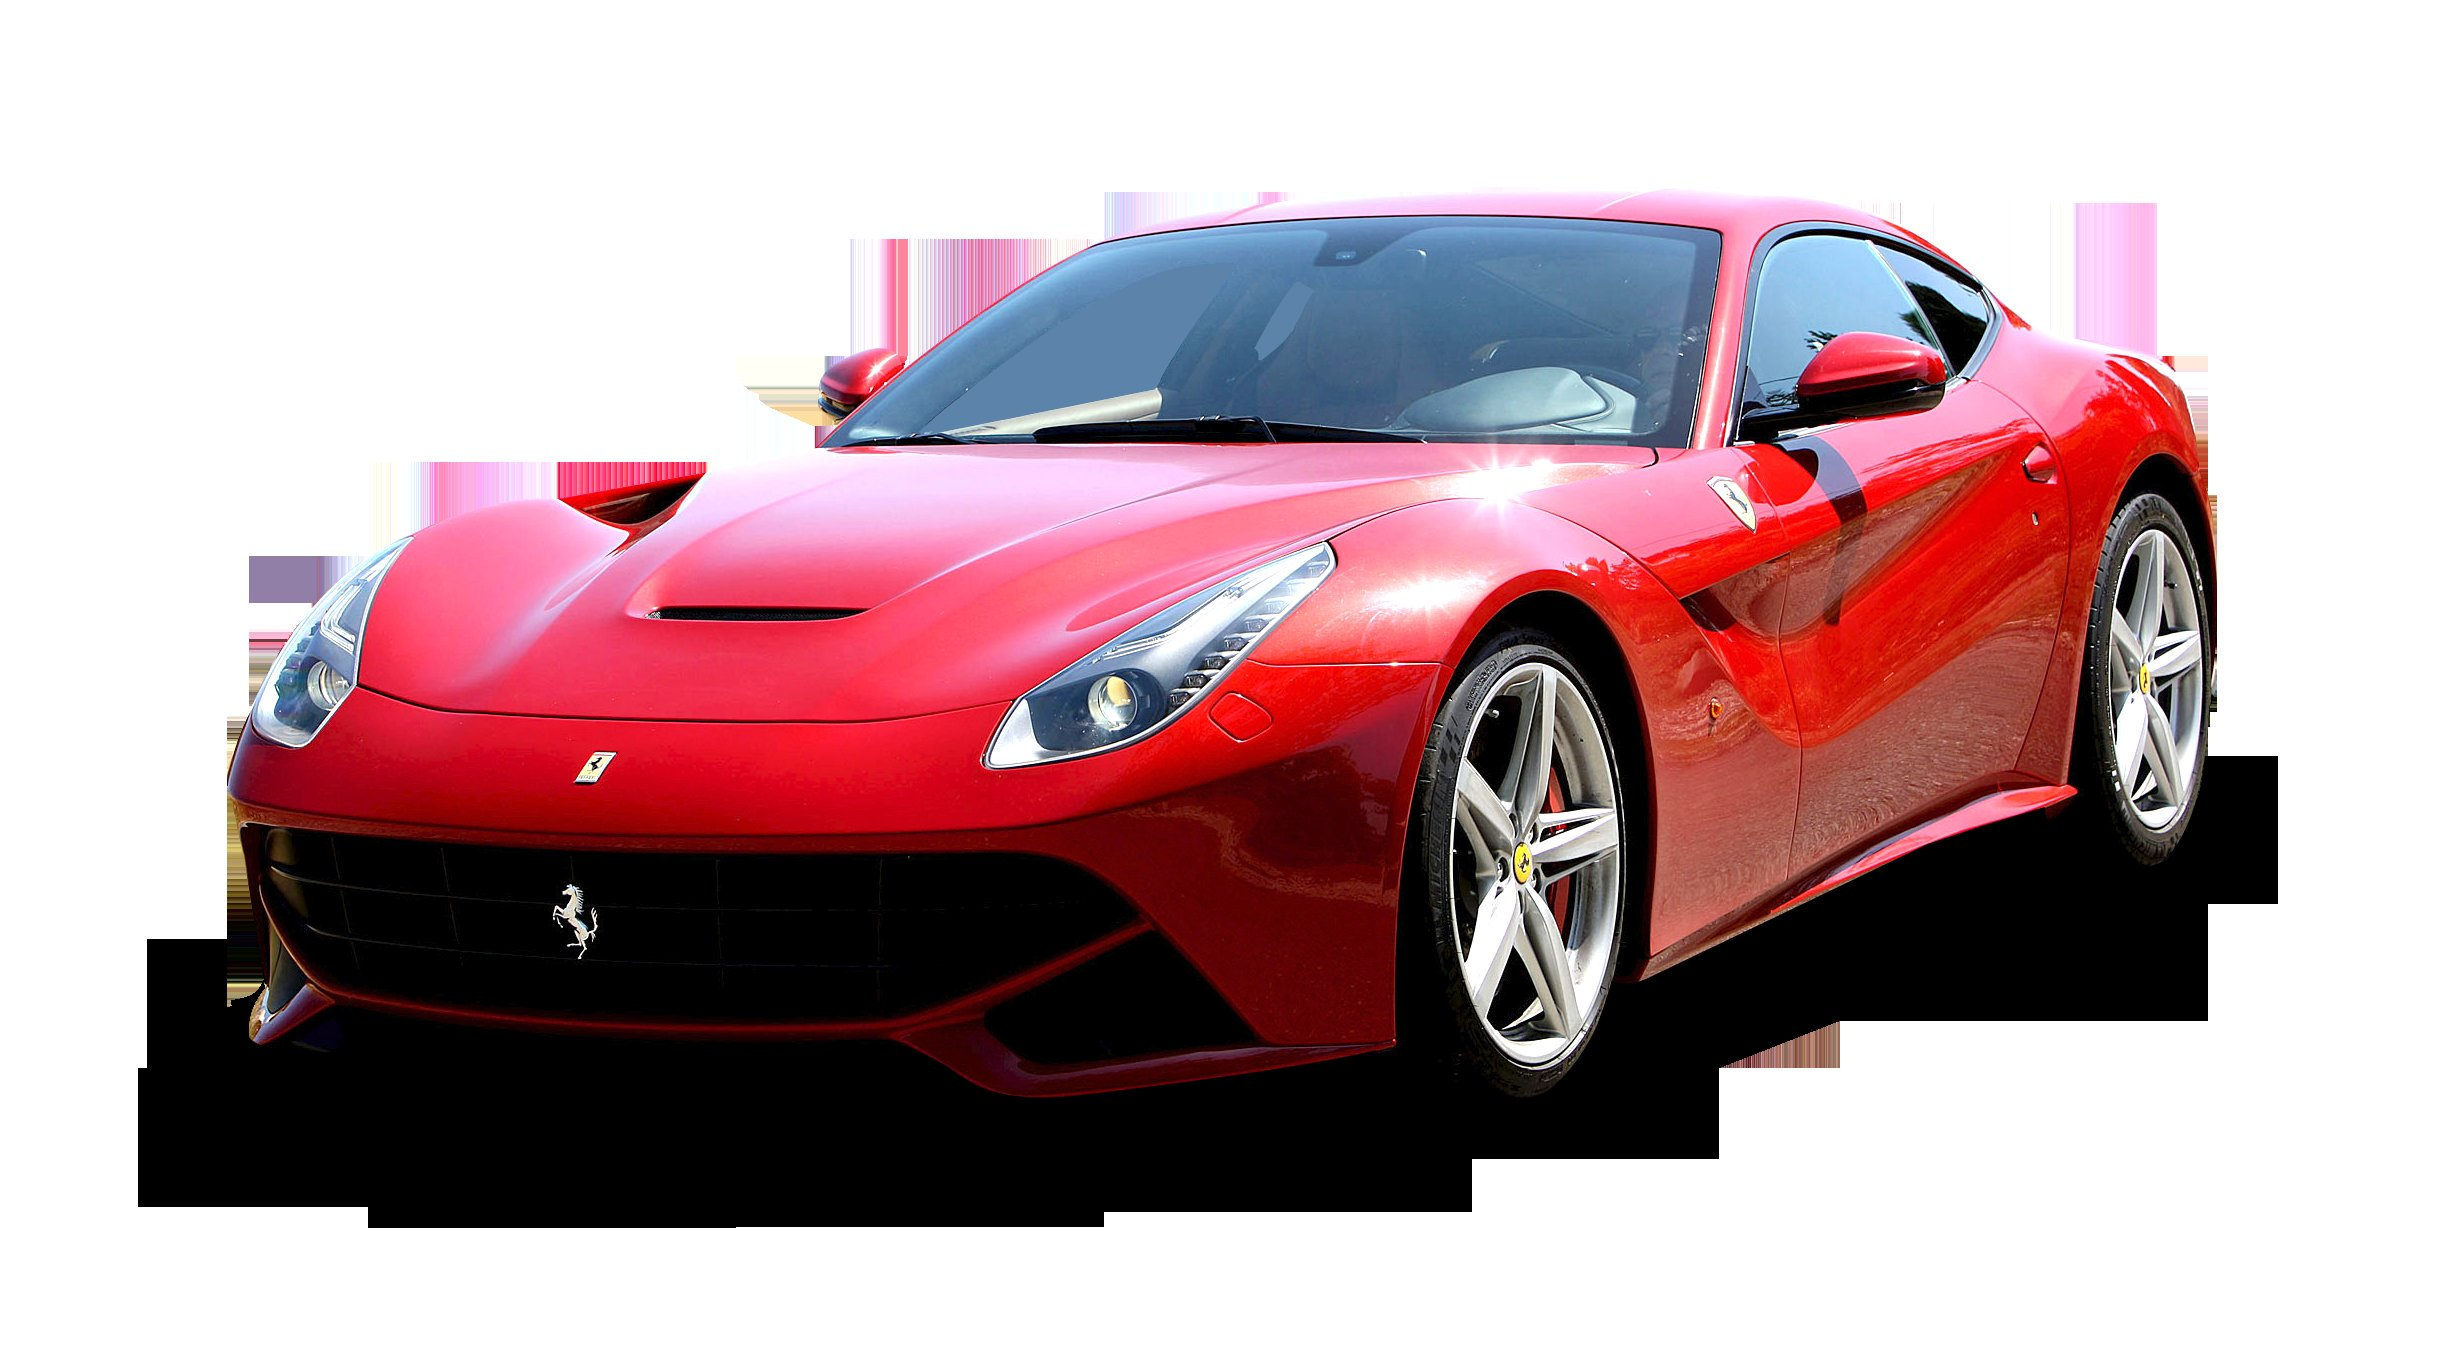 New Red Ferrari F12 Berlinetta Car Png Image Pngpix On This Month